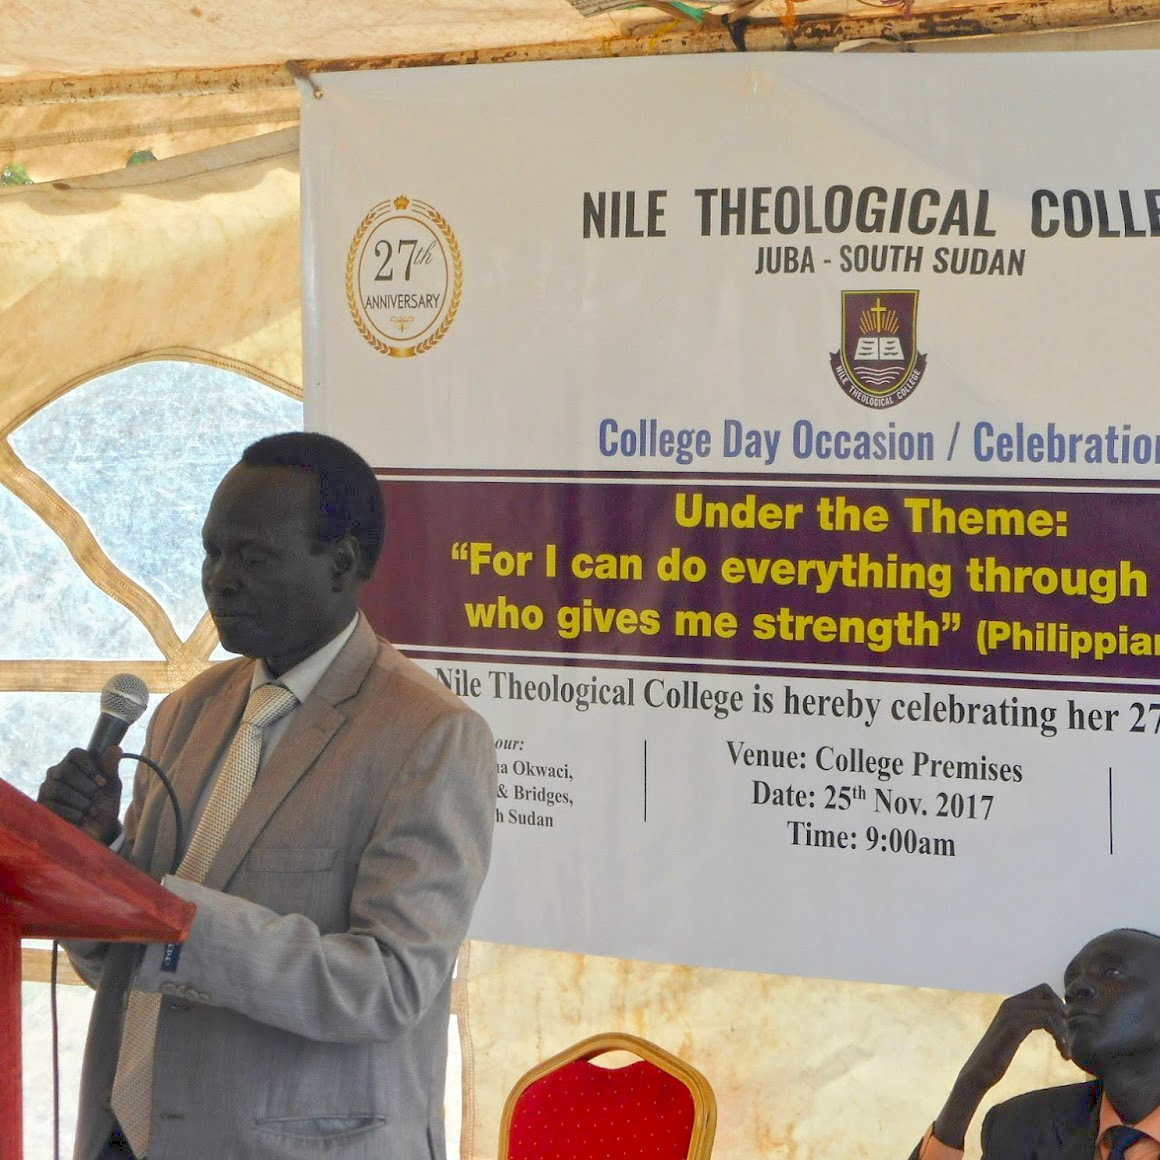 Rev. Santino, principal of Nile Theological College,  speaks at College Day.